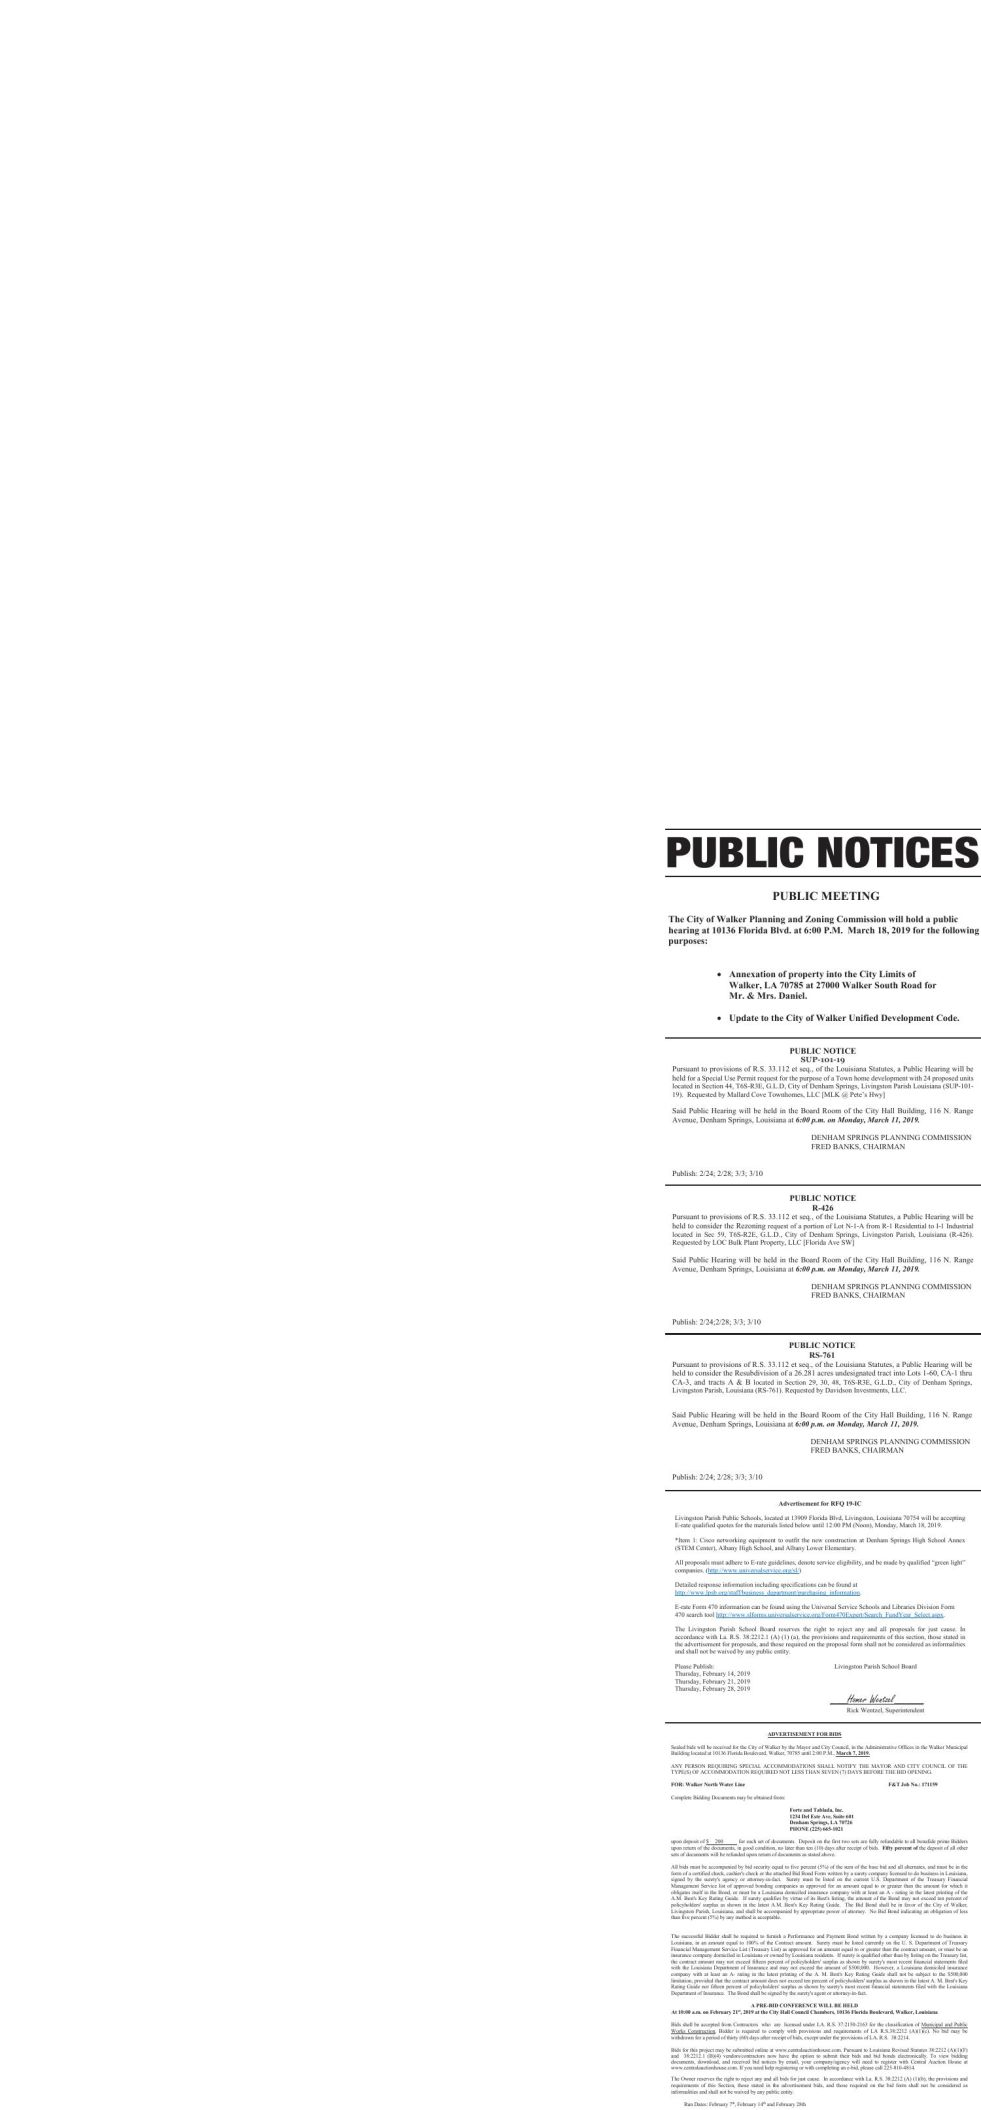 Public Notices published February 28, 2019